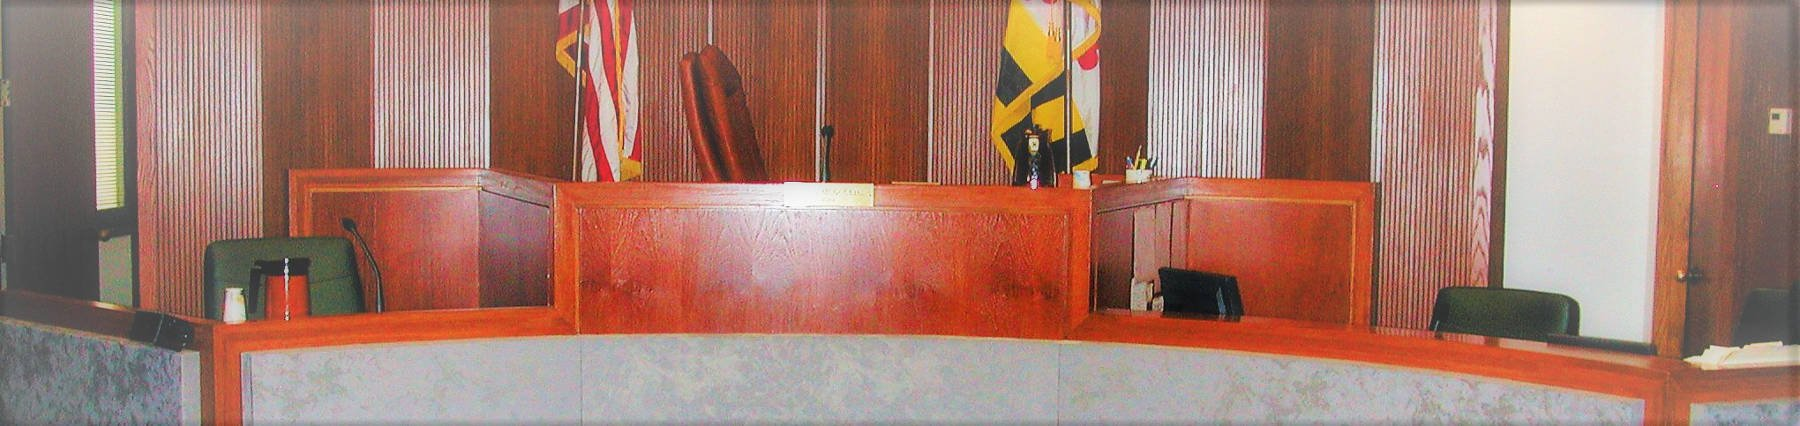 Montgomery County Courtroom | Fentress Inc.